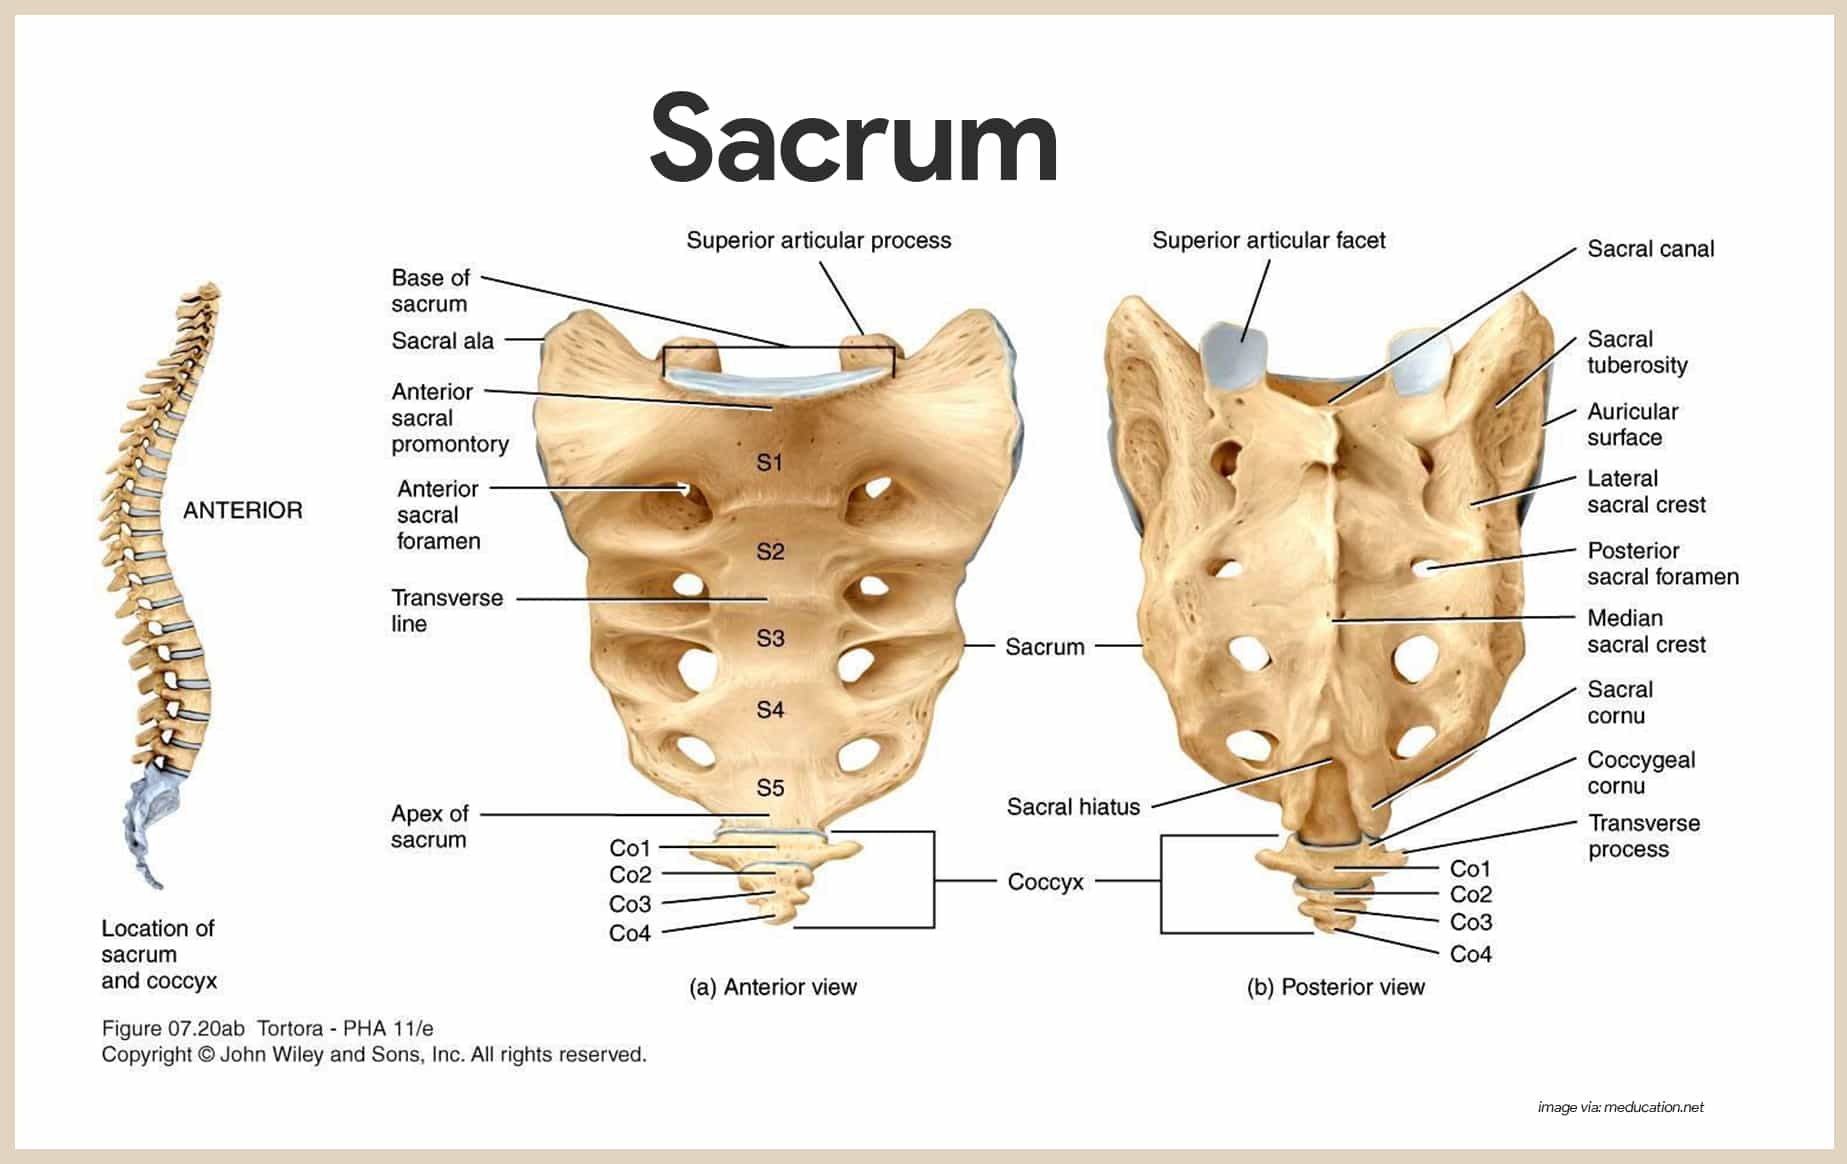 Sacrum-Skeletal System Anatomy and Physiology for Nurses